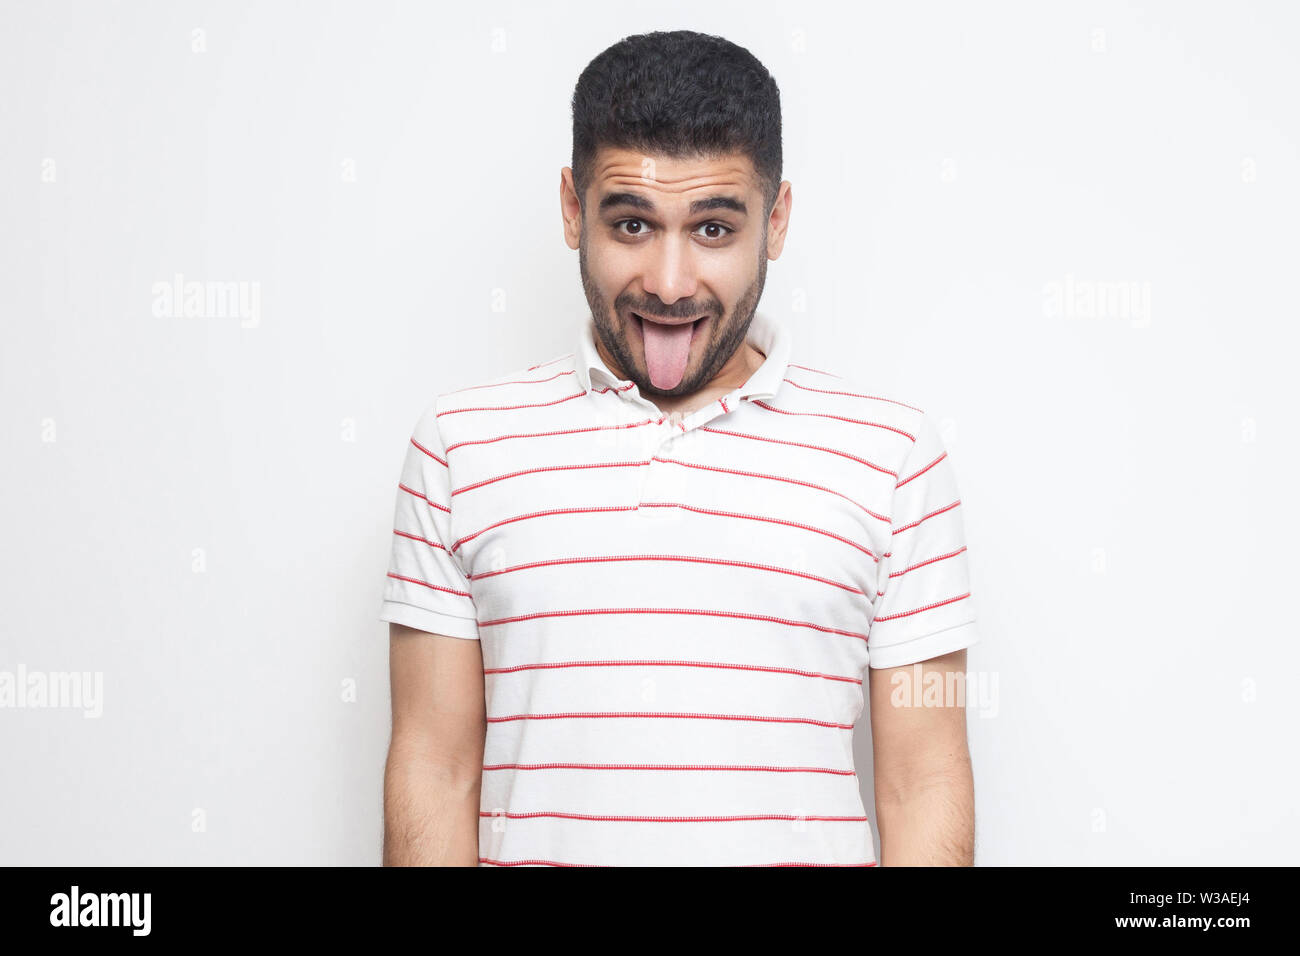 Portrait of funny crazy handsome bearded young man in striped t-shirt standing, tongue out and looking at camera with funny face. indoor studio shot, Stock Photo